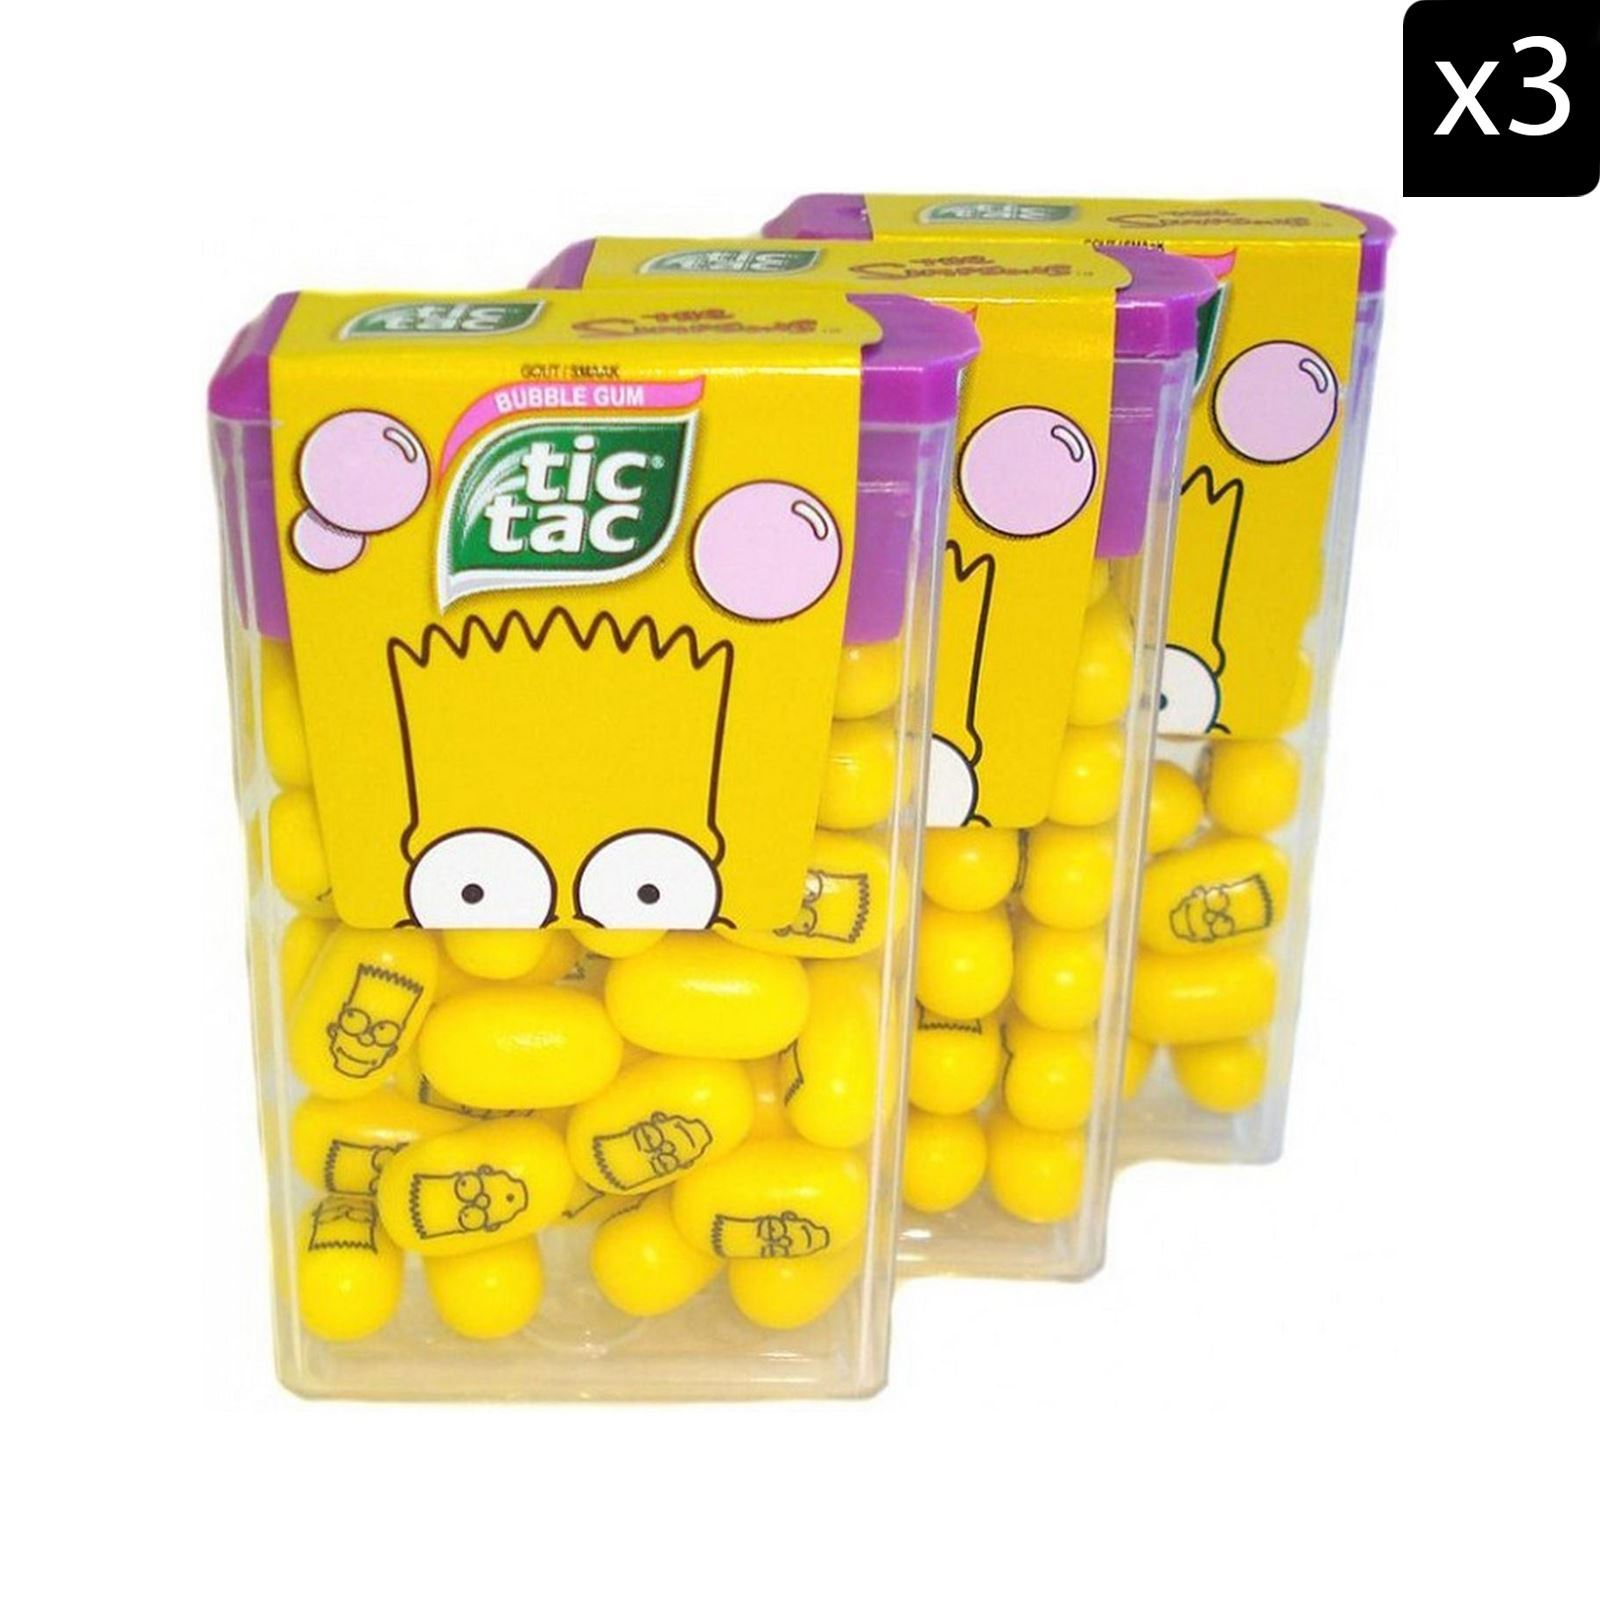 Simpsons Bettwäsche Tic Tac Simpsons Tic Tacs 3 Packungen Brandalley